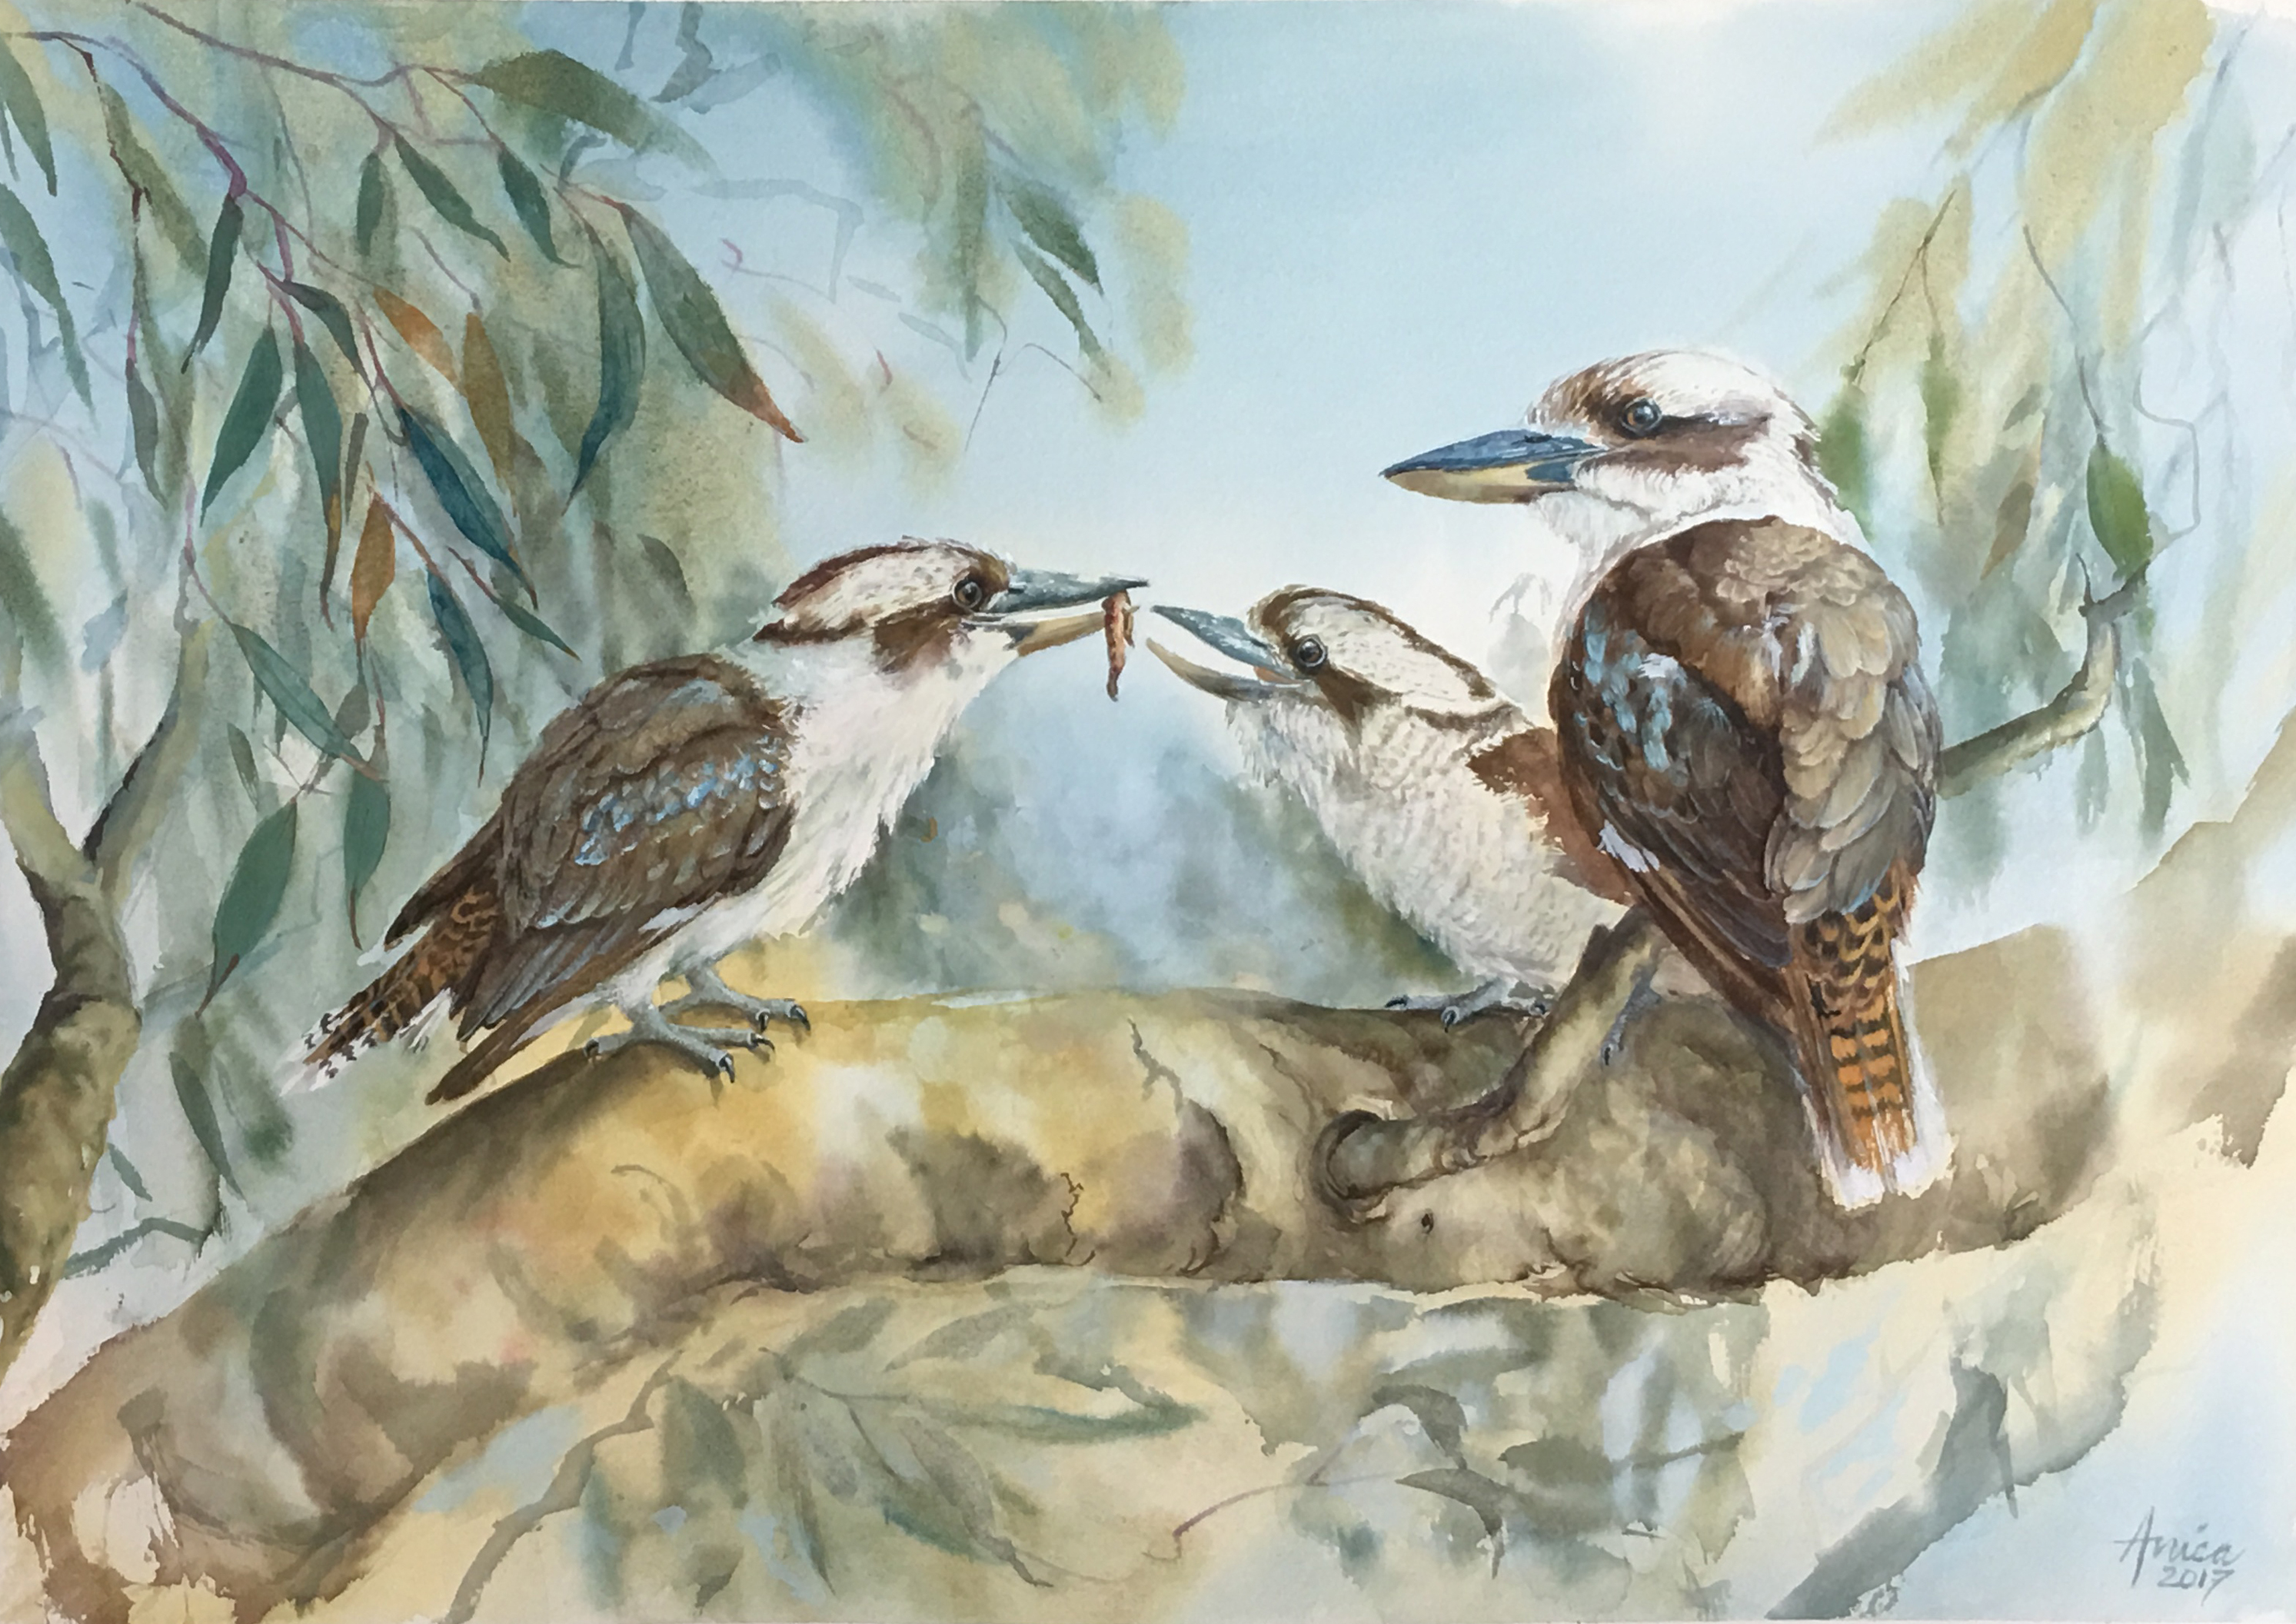 Family of Kookaburras